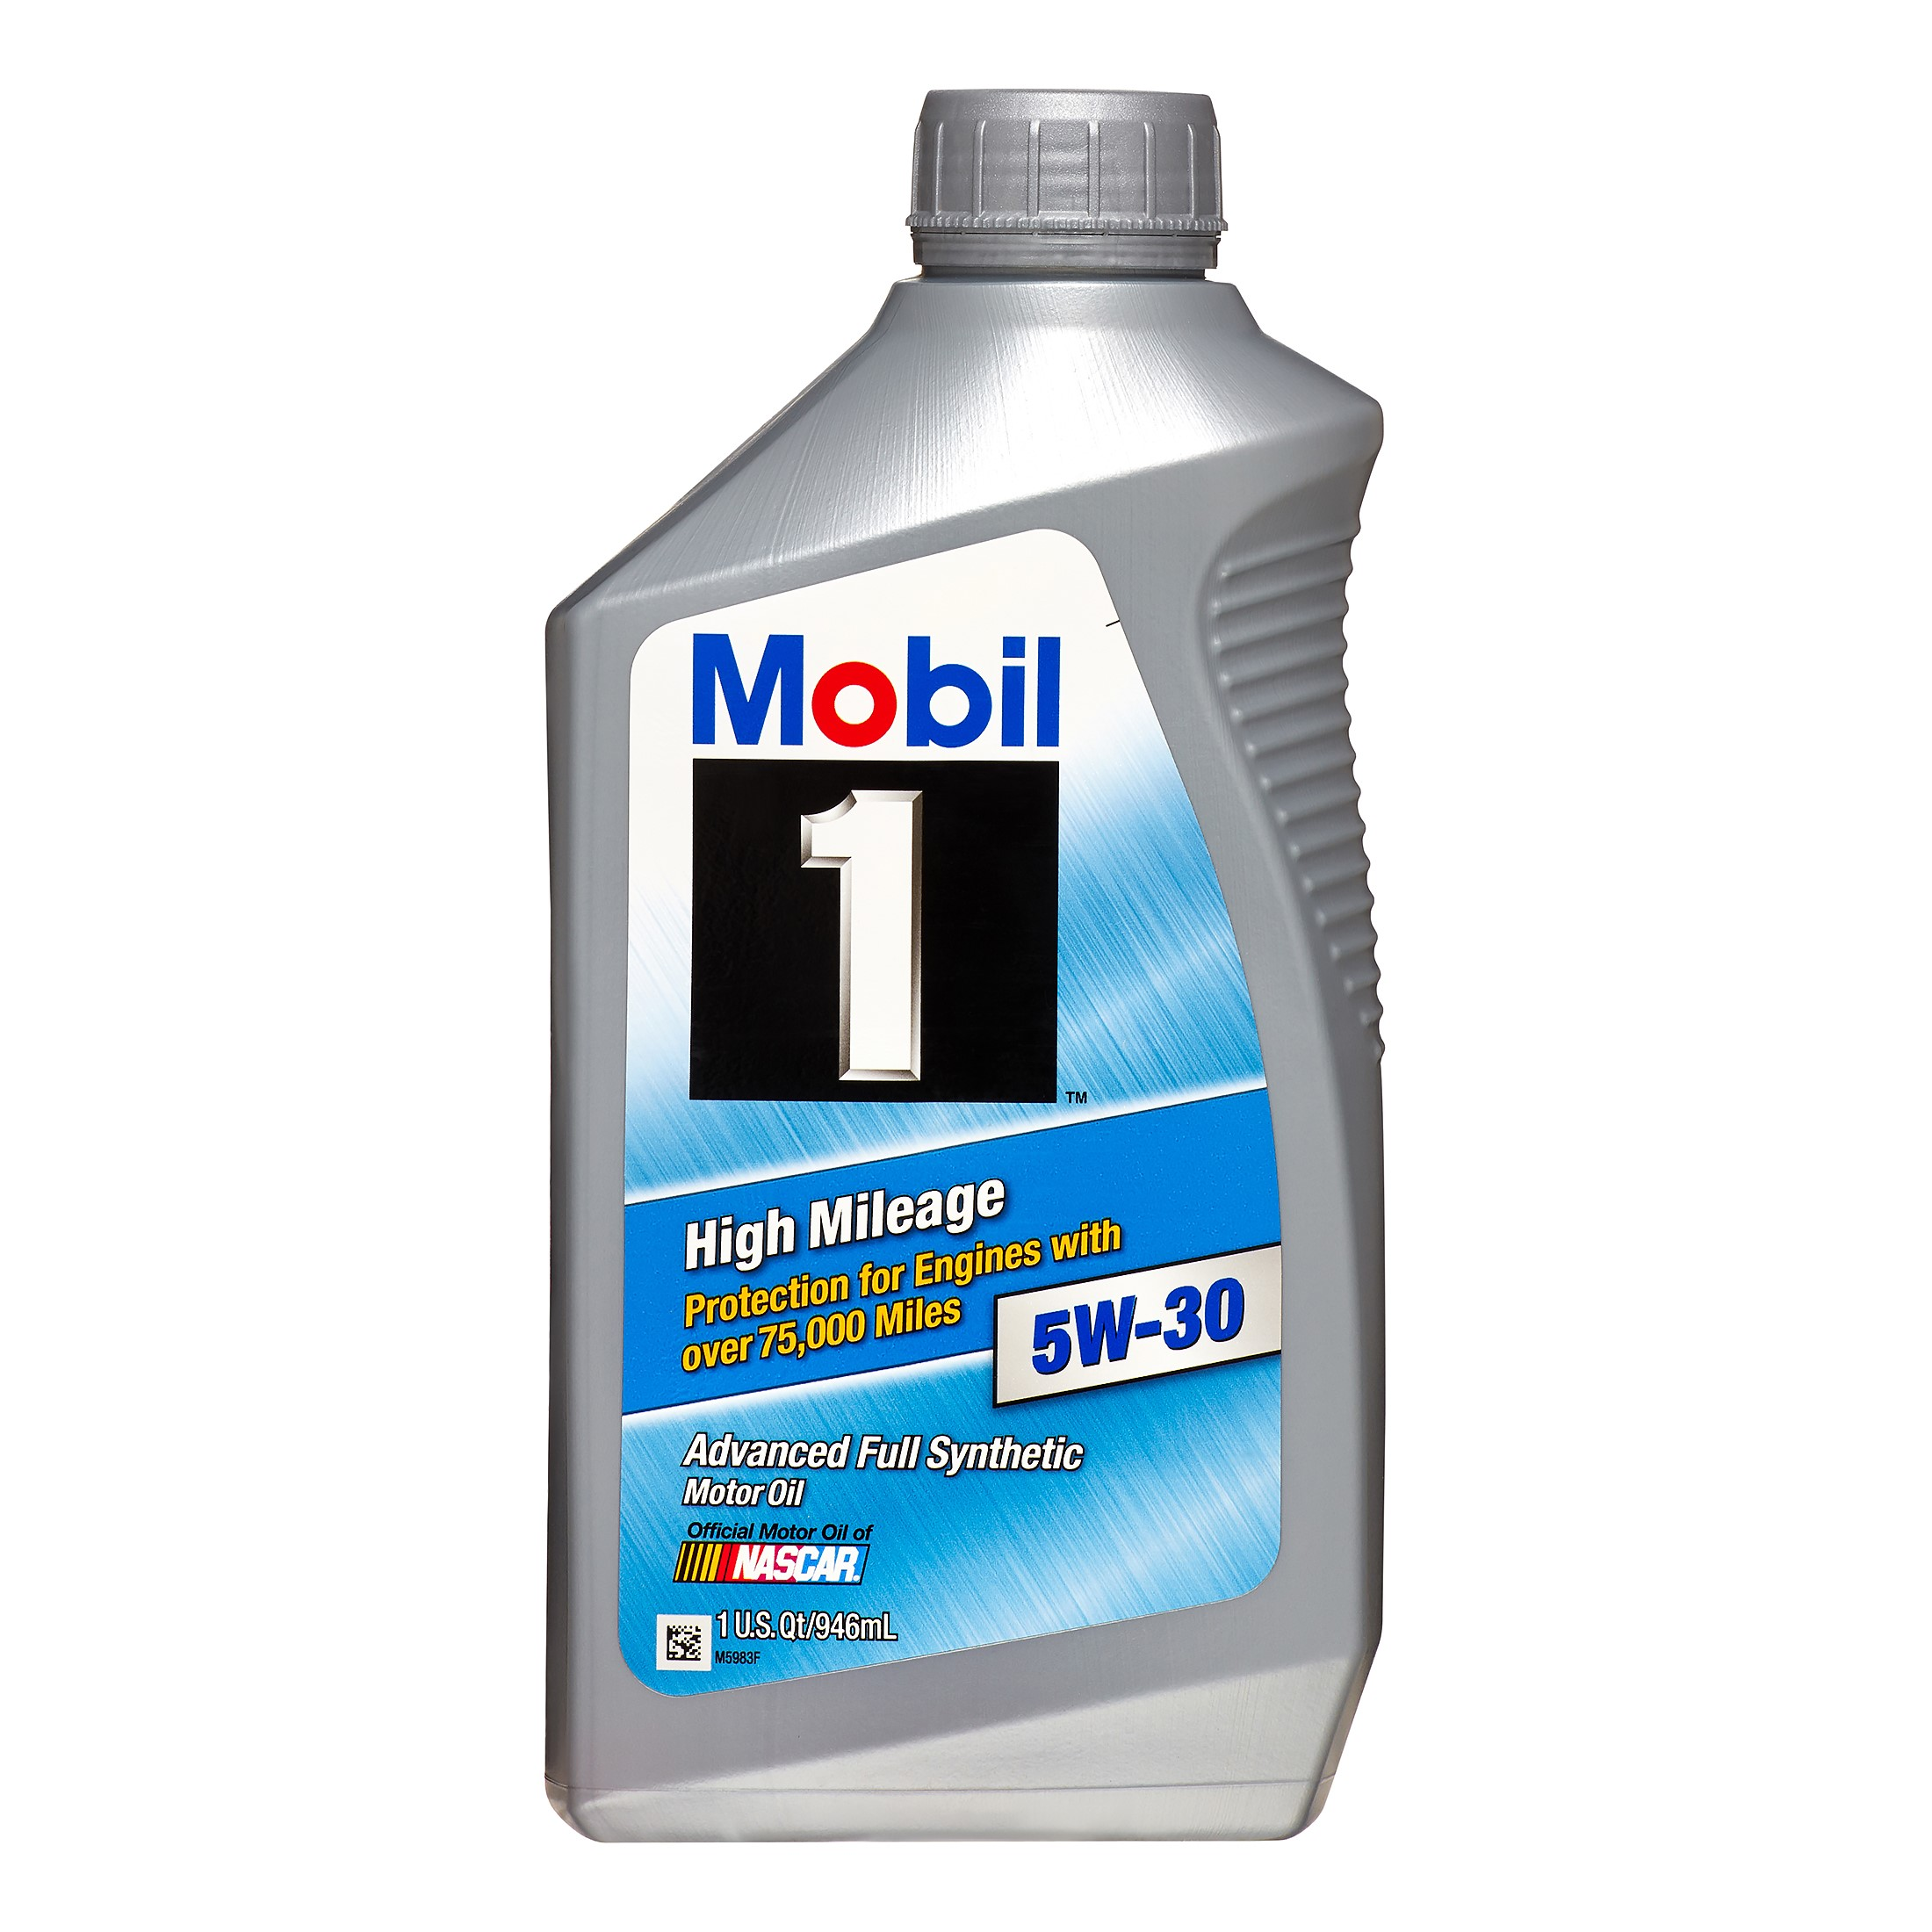 Mobil 1 5W-30 High Mileage Full Synthetic Motor Oil, 1 qt.